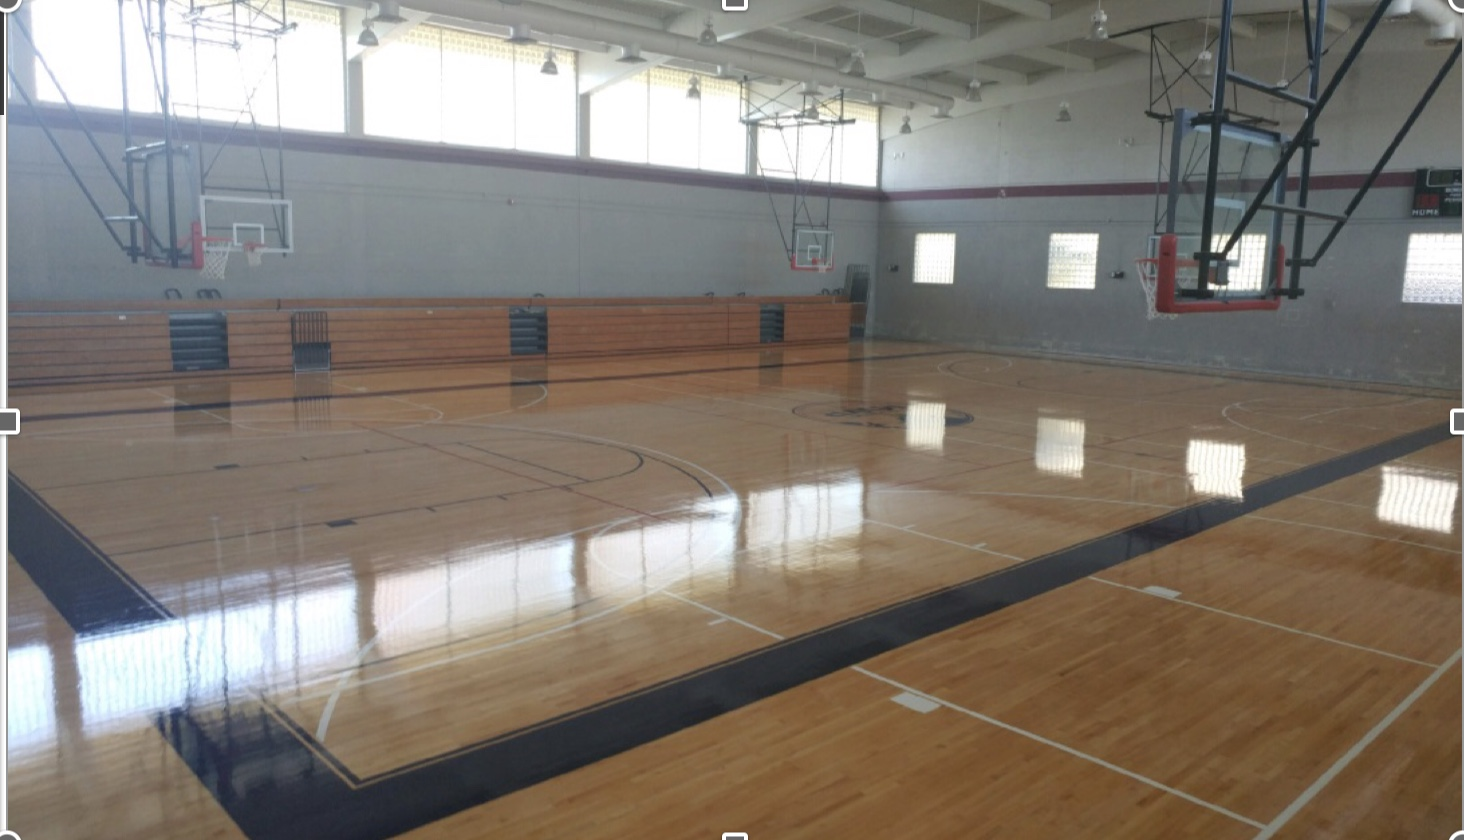 Title/Location:     Athletic Courts Installation/Repair  Customer Name: Department of United States Army; Hosking Physical Fitness Center, Hercules Physical Fitness Center Bldg; Fort Bragg, North Carolina   (Photo 1  of 2)   Installed and repaired Basketball courts.  This project required installation or repair of existing hardwood flooring, including resurfacing, finishing, sanding, application of oil based urethane coating, and re-striping and marking of athletic court lines.  Carolina Group's team provided all labor, equipment and materials necessary to complete to project, as well as debris removal and cleanup. Carolina group performed all ancillary work including installation of doors, door jams, suspended acoustical ceiling system, LED lighting, and H VAC assessment and renovation where necessary.